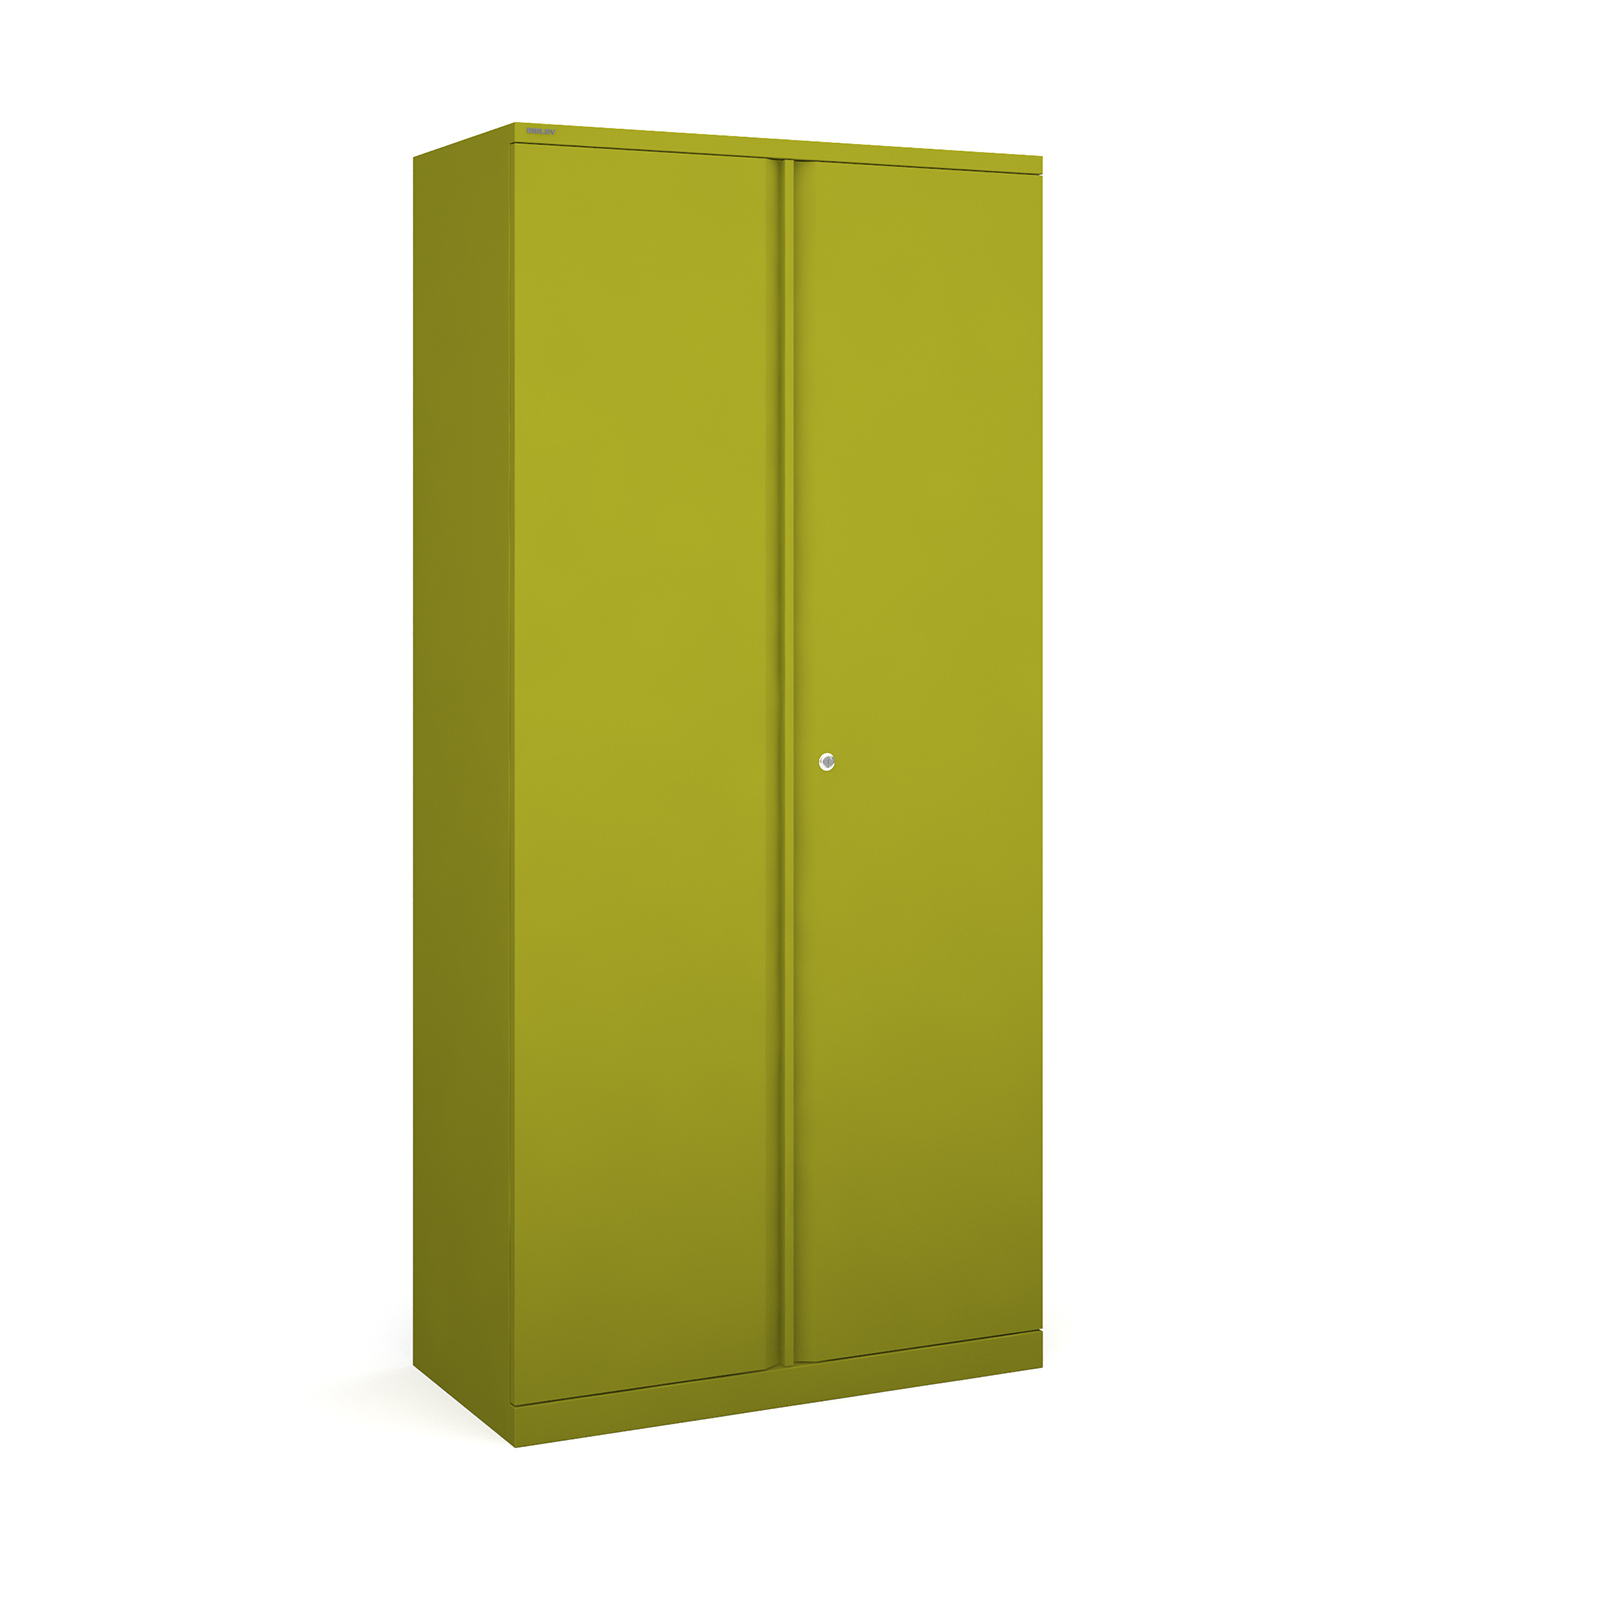 Bisley systems storage high cupboard 1970mm high - green